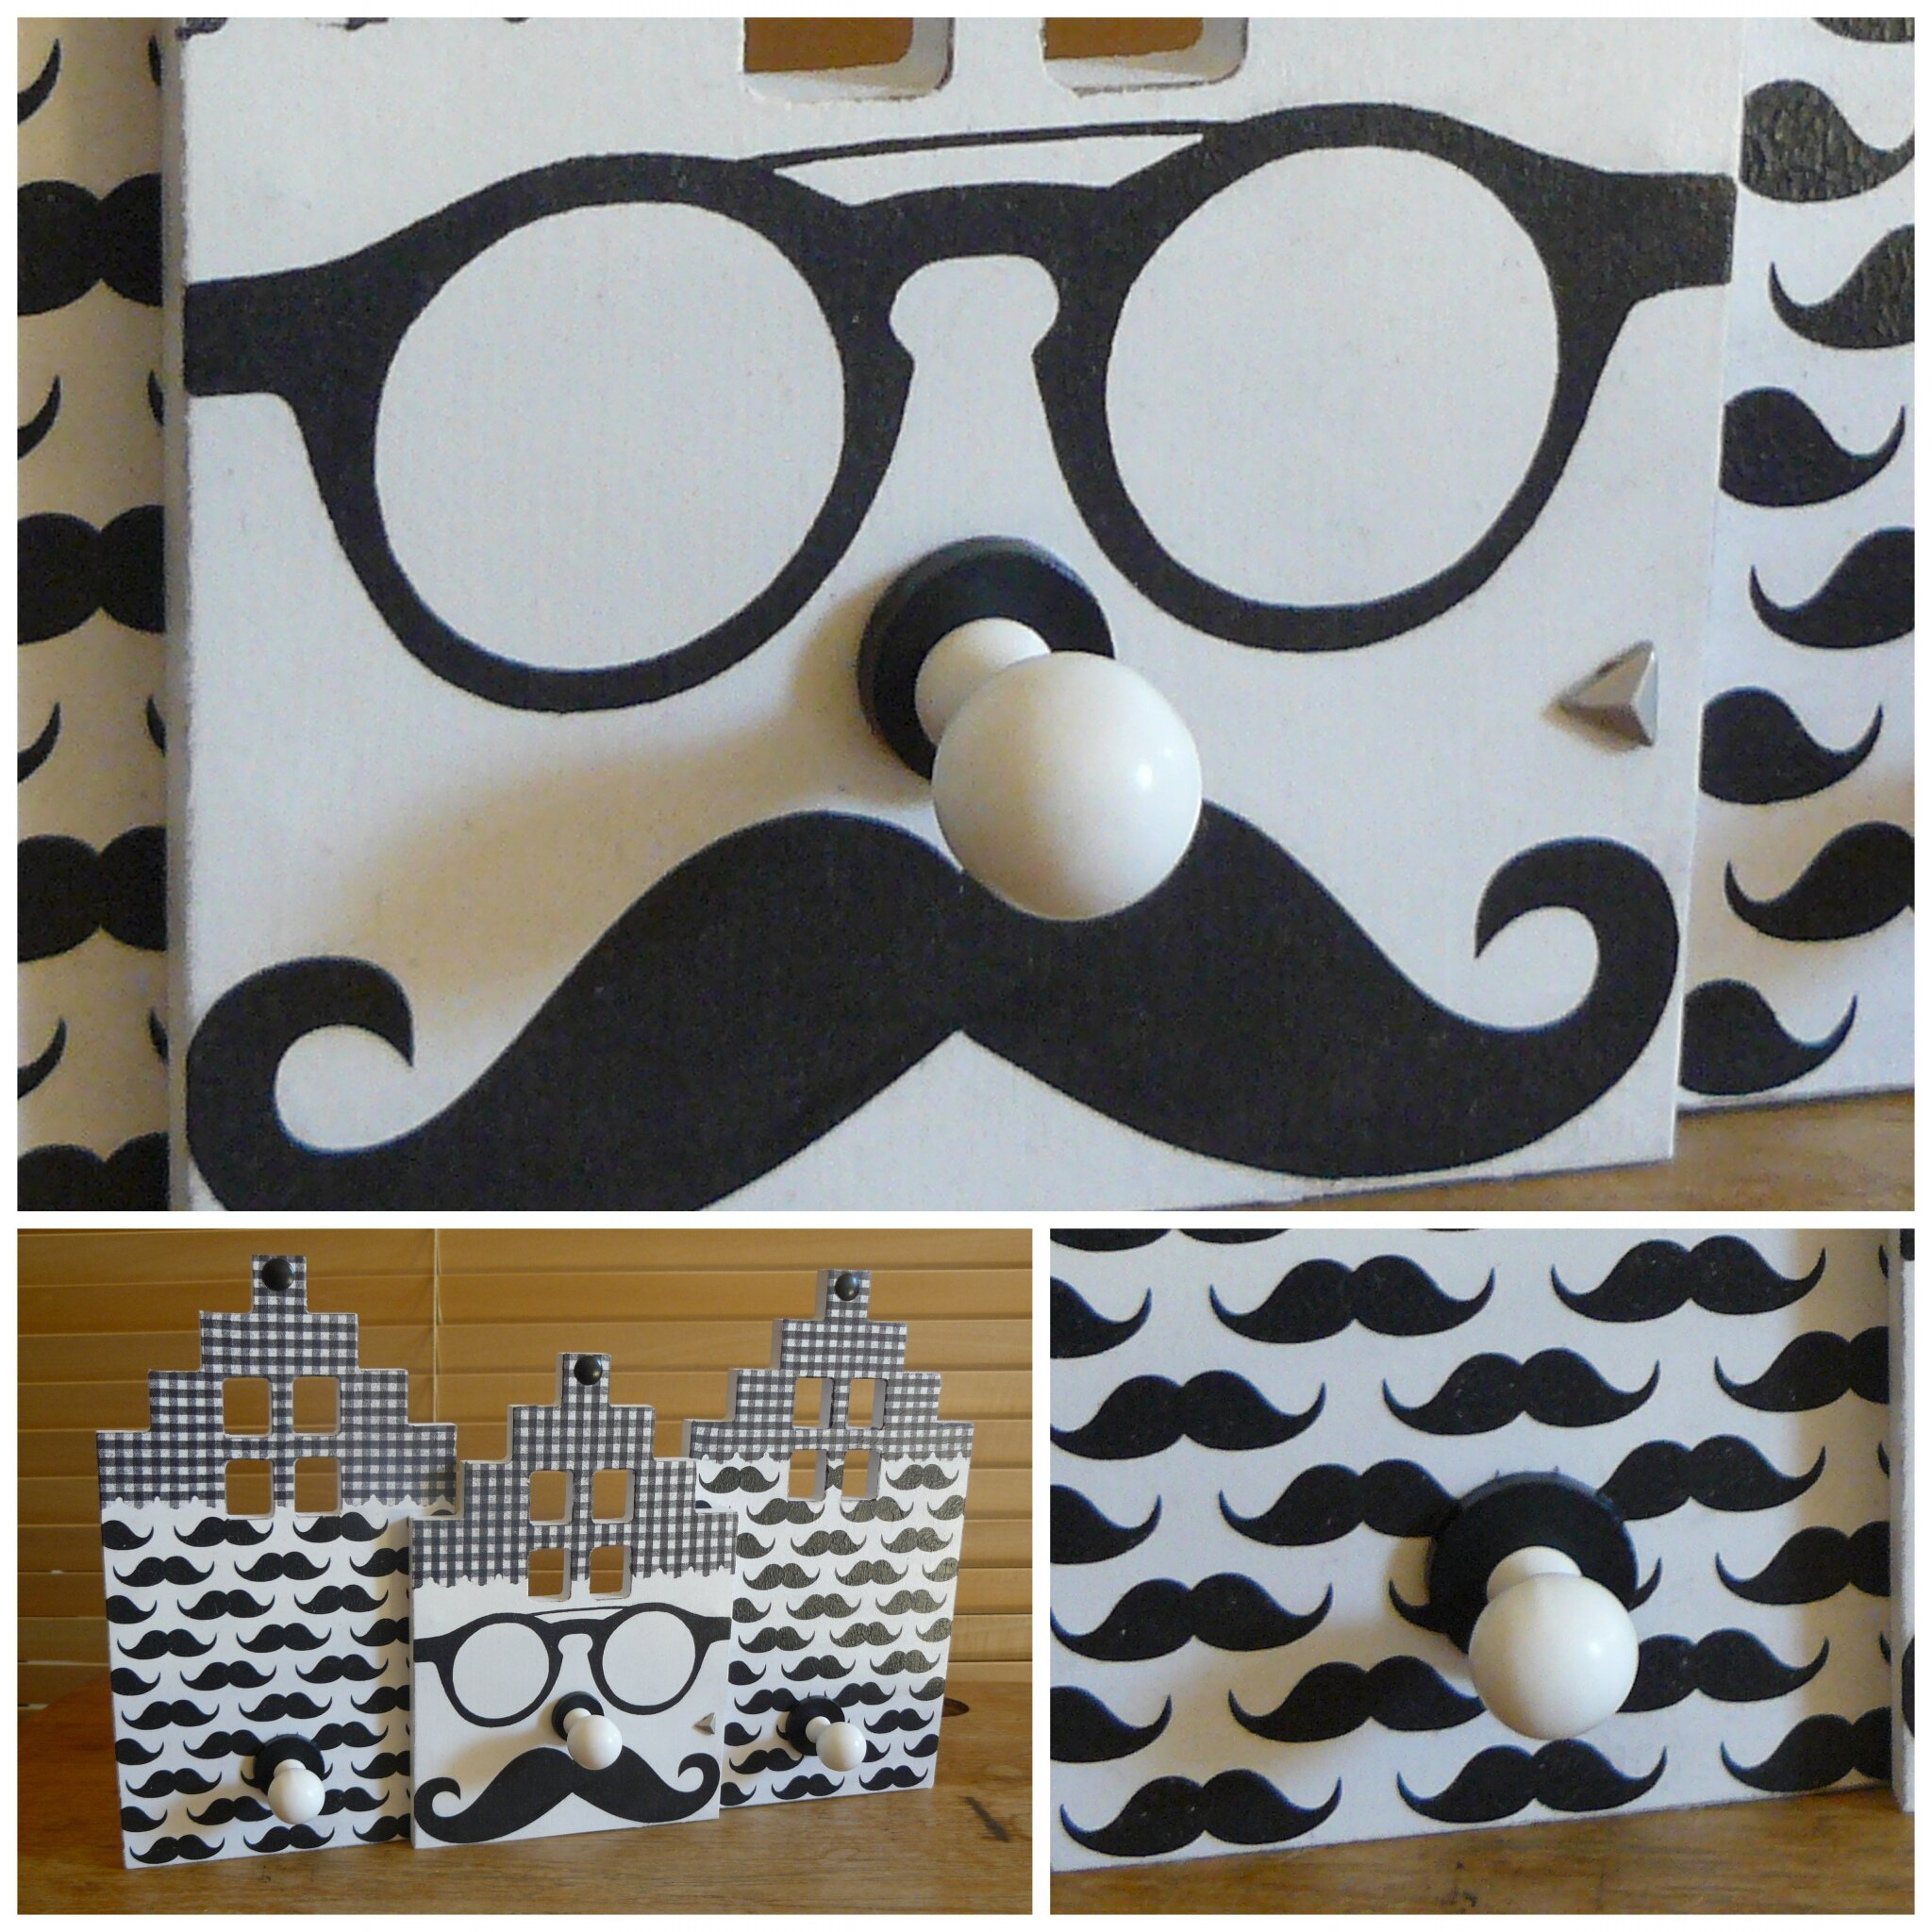 Monsieur Moustache !!! ...